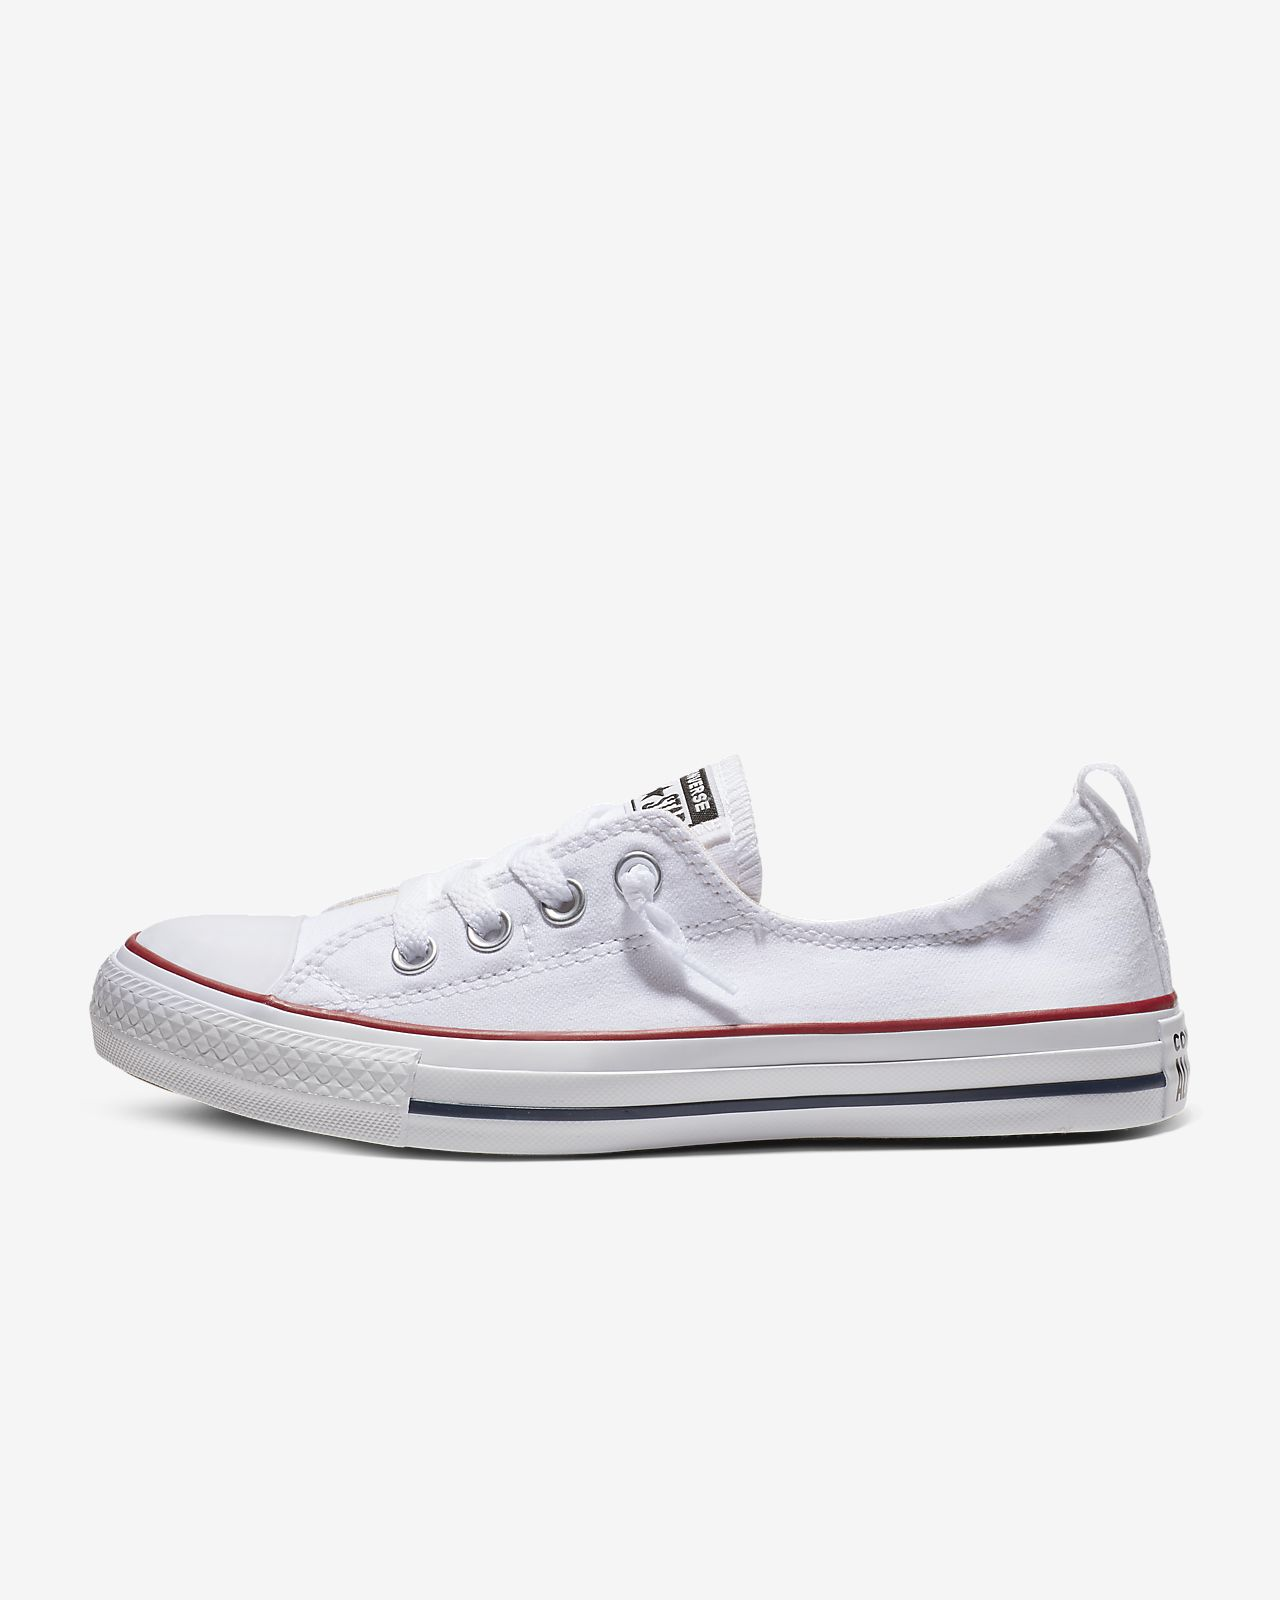 white converse all star women